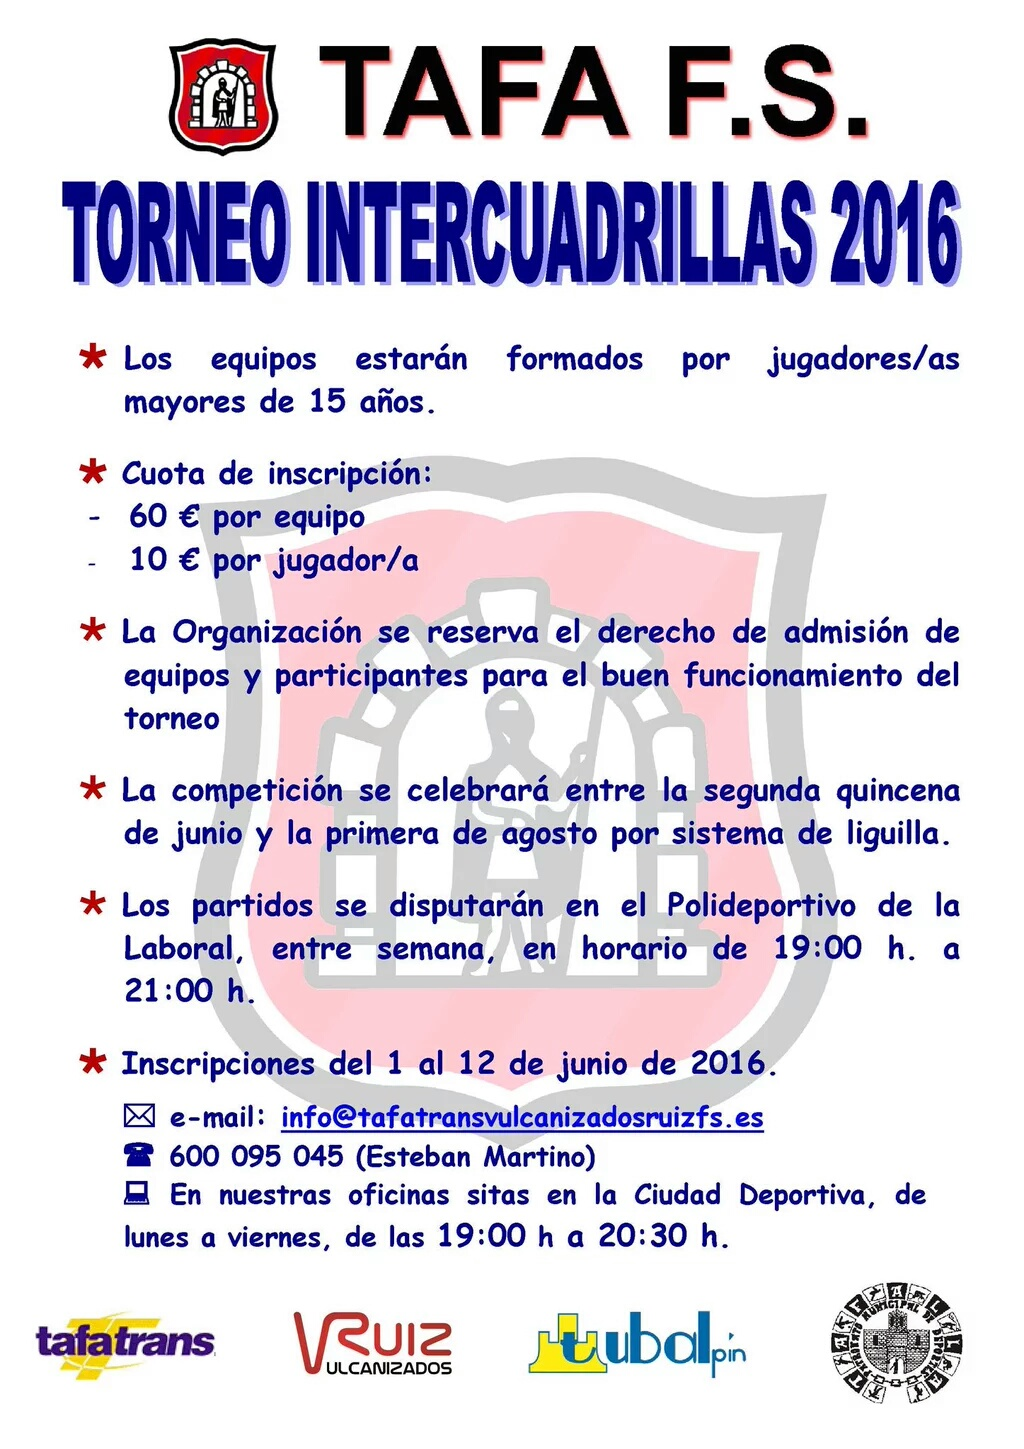 Cartel Intercuadrillas